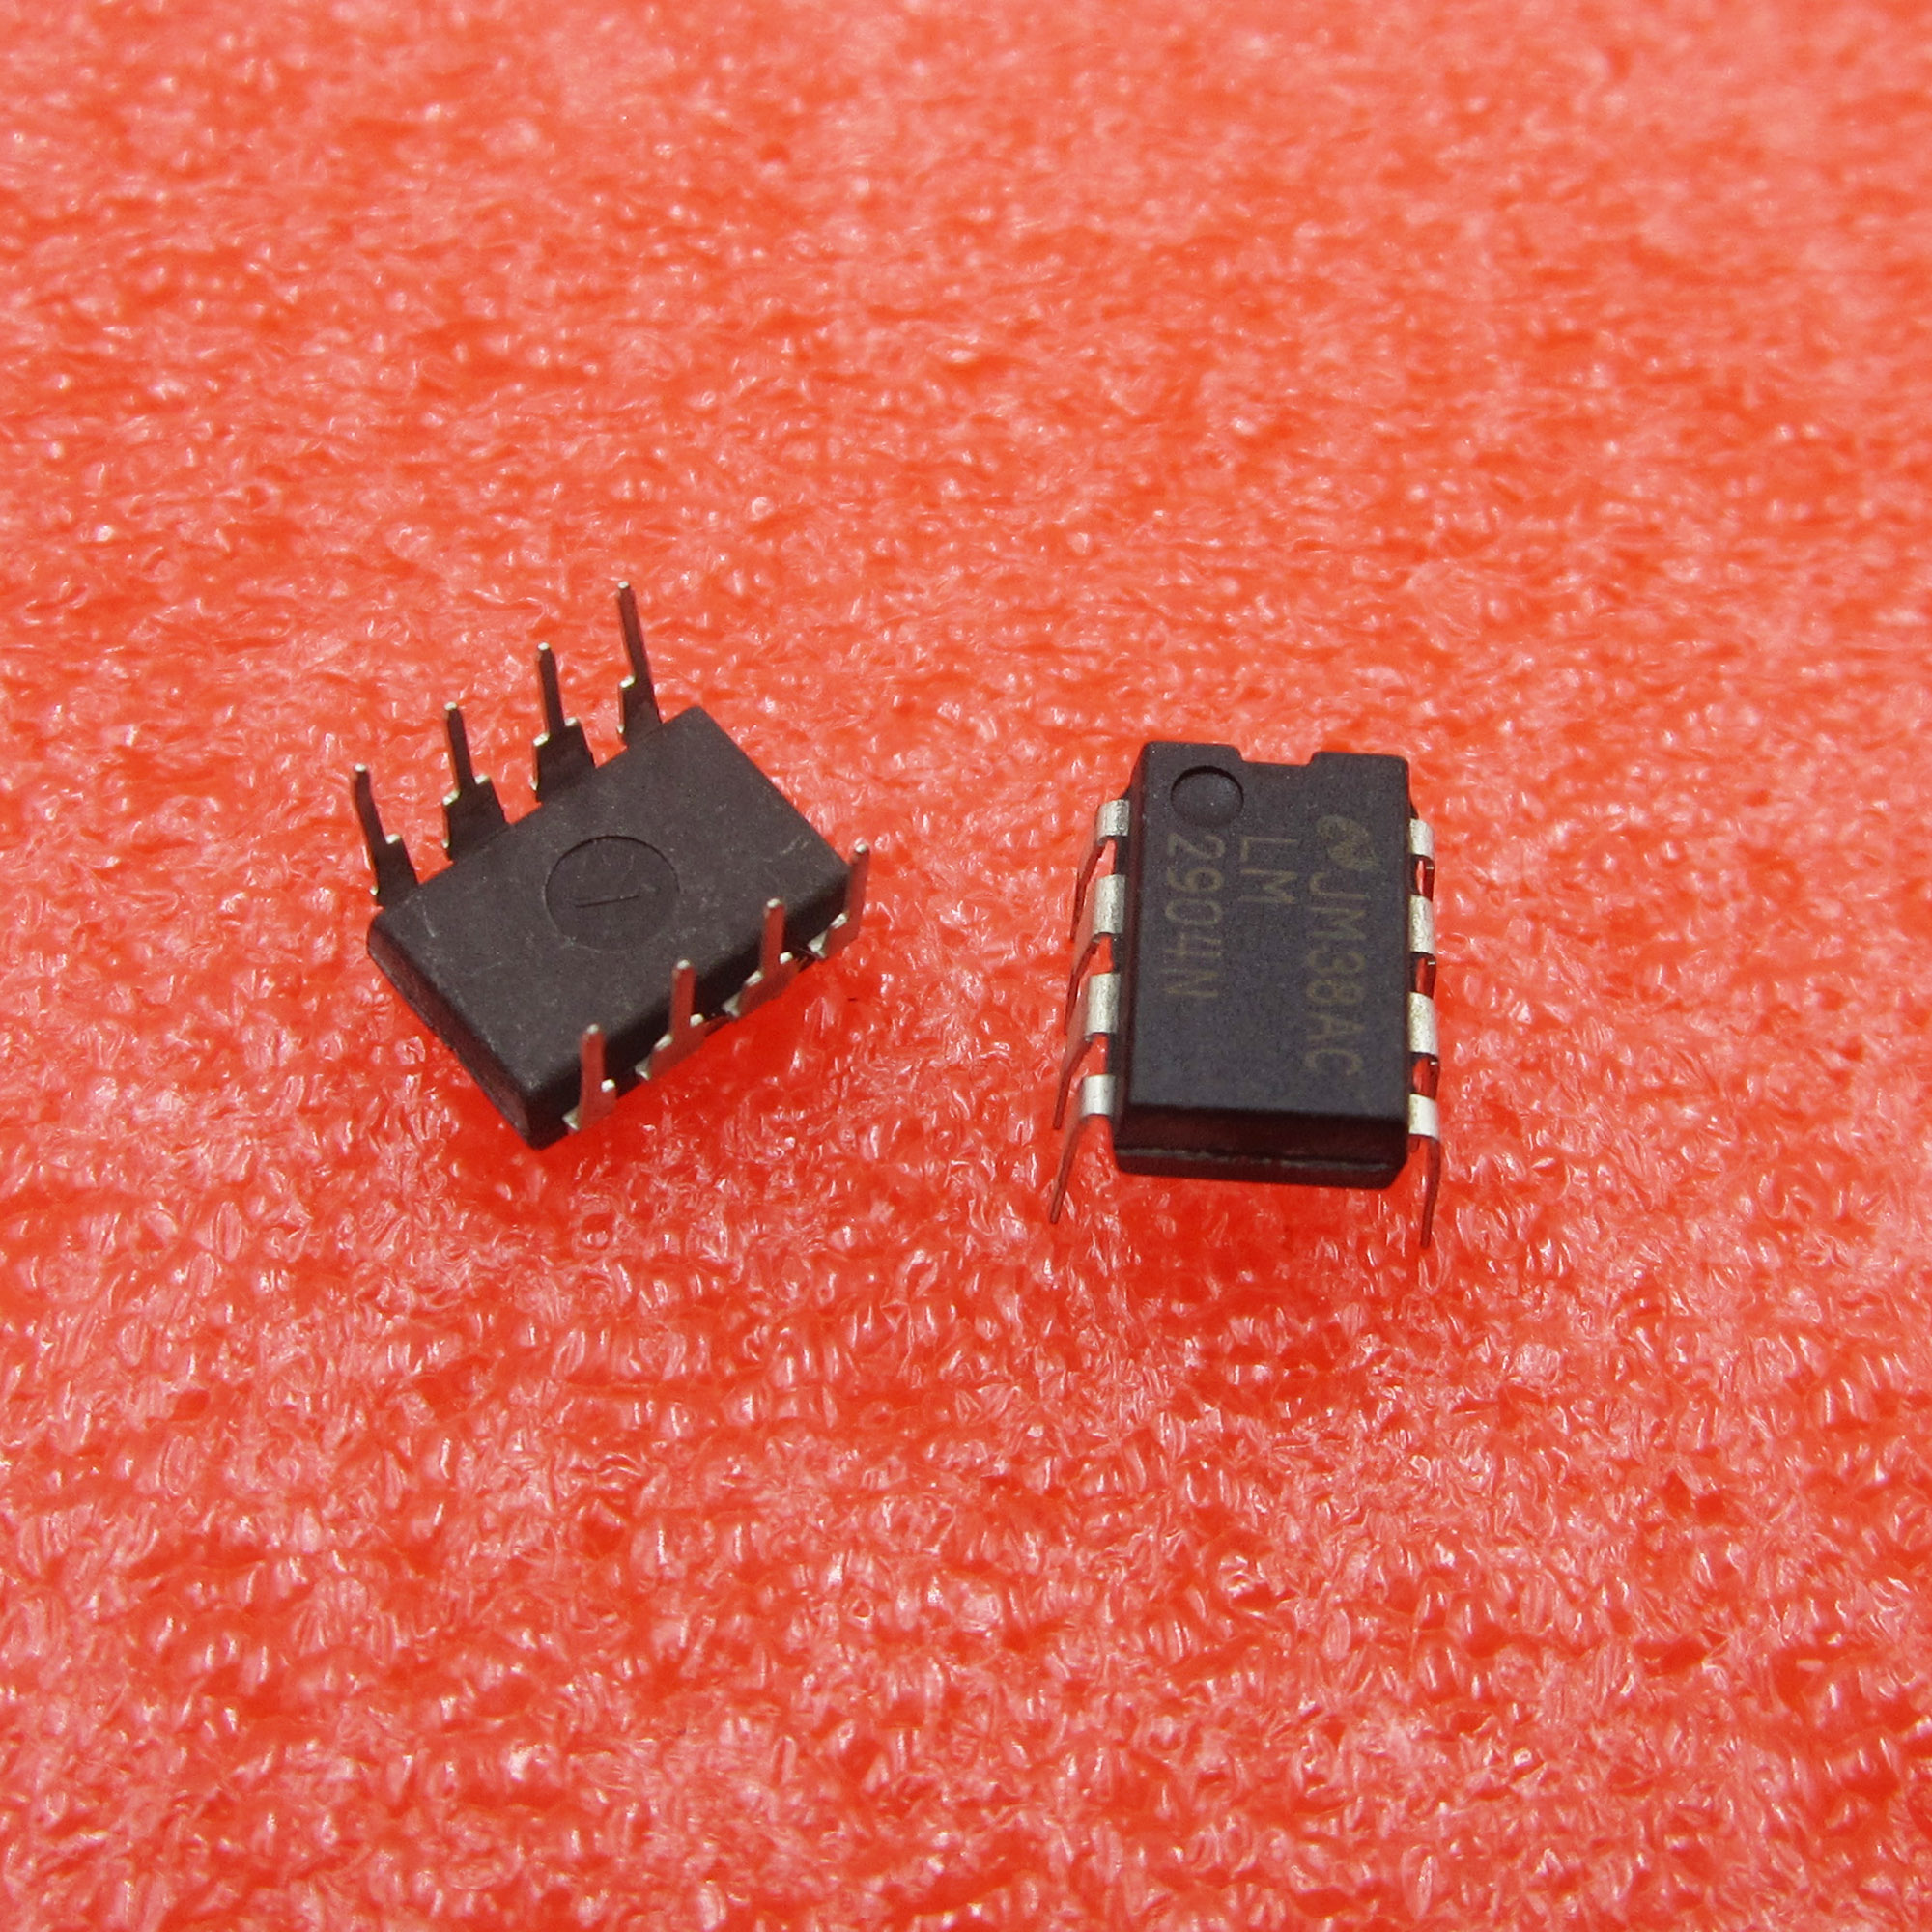 5pcs Lm2904n Lm2904 Large Gain Low Power Dual Op Amp Ic Ebay 741 Operational Amplifier Integrated Circuit